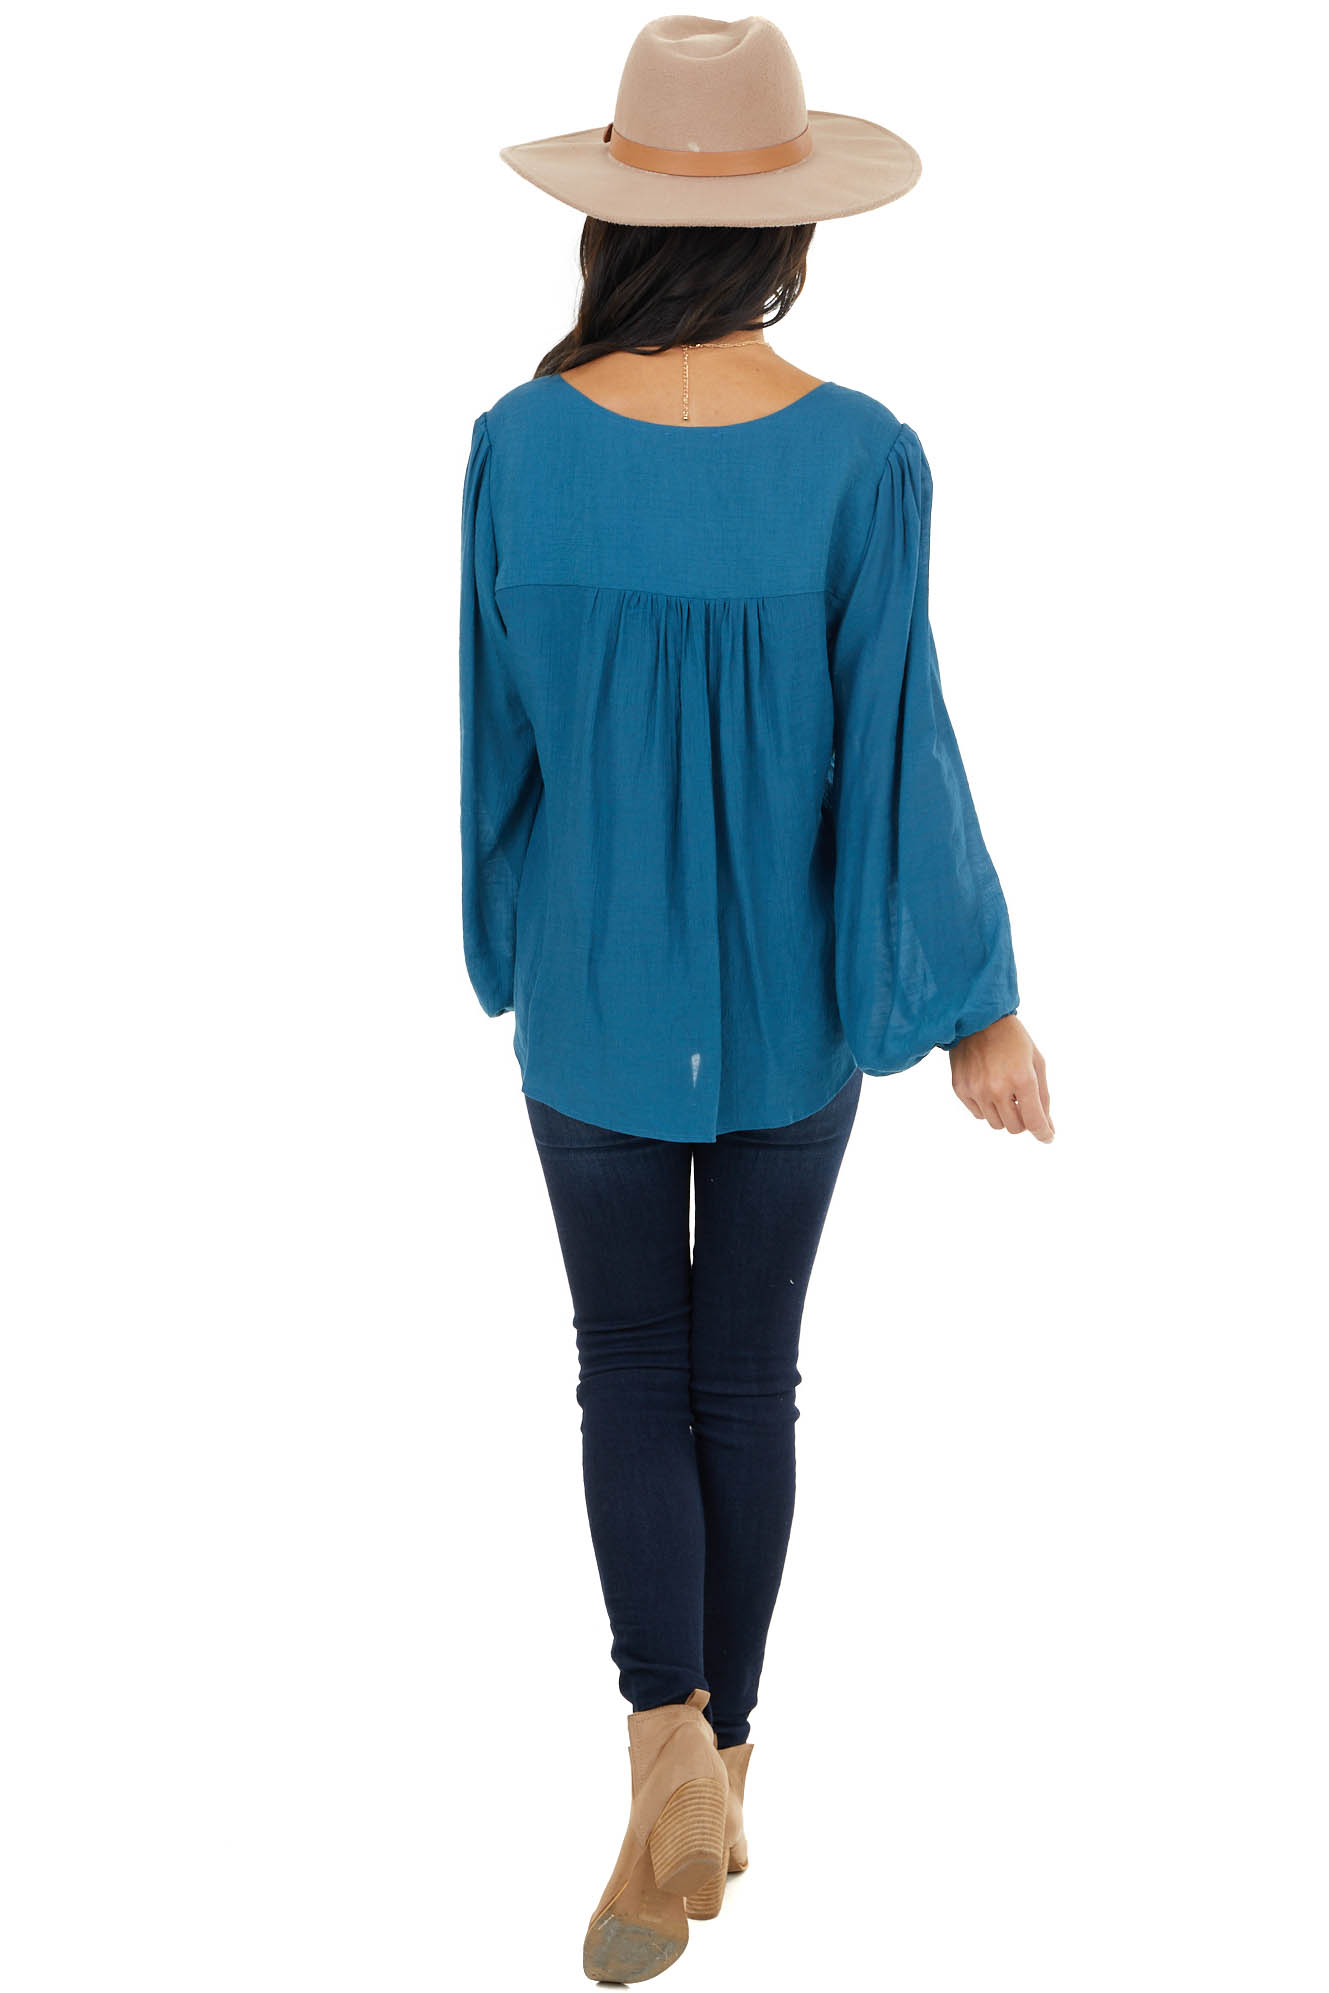 Dark Teal Surplice Puff Sleeve Blouse with Bubble Hemline